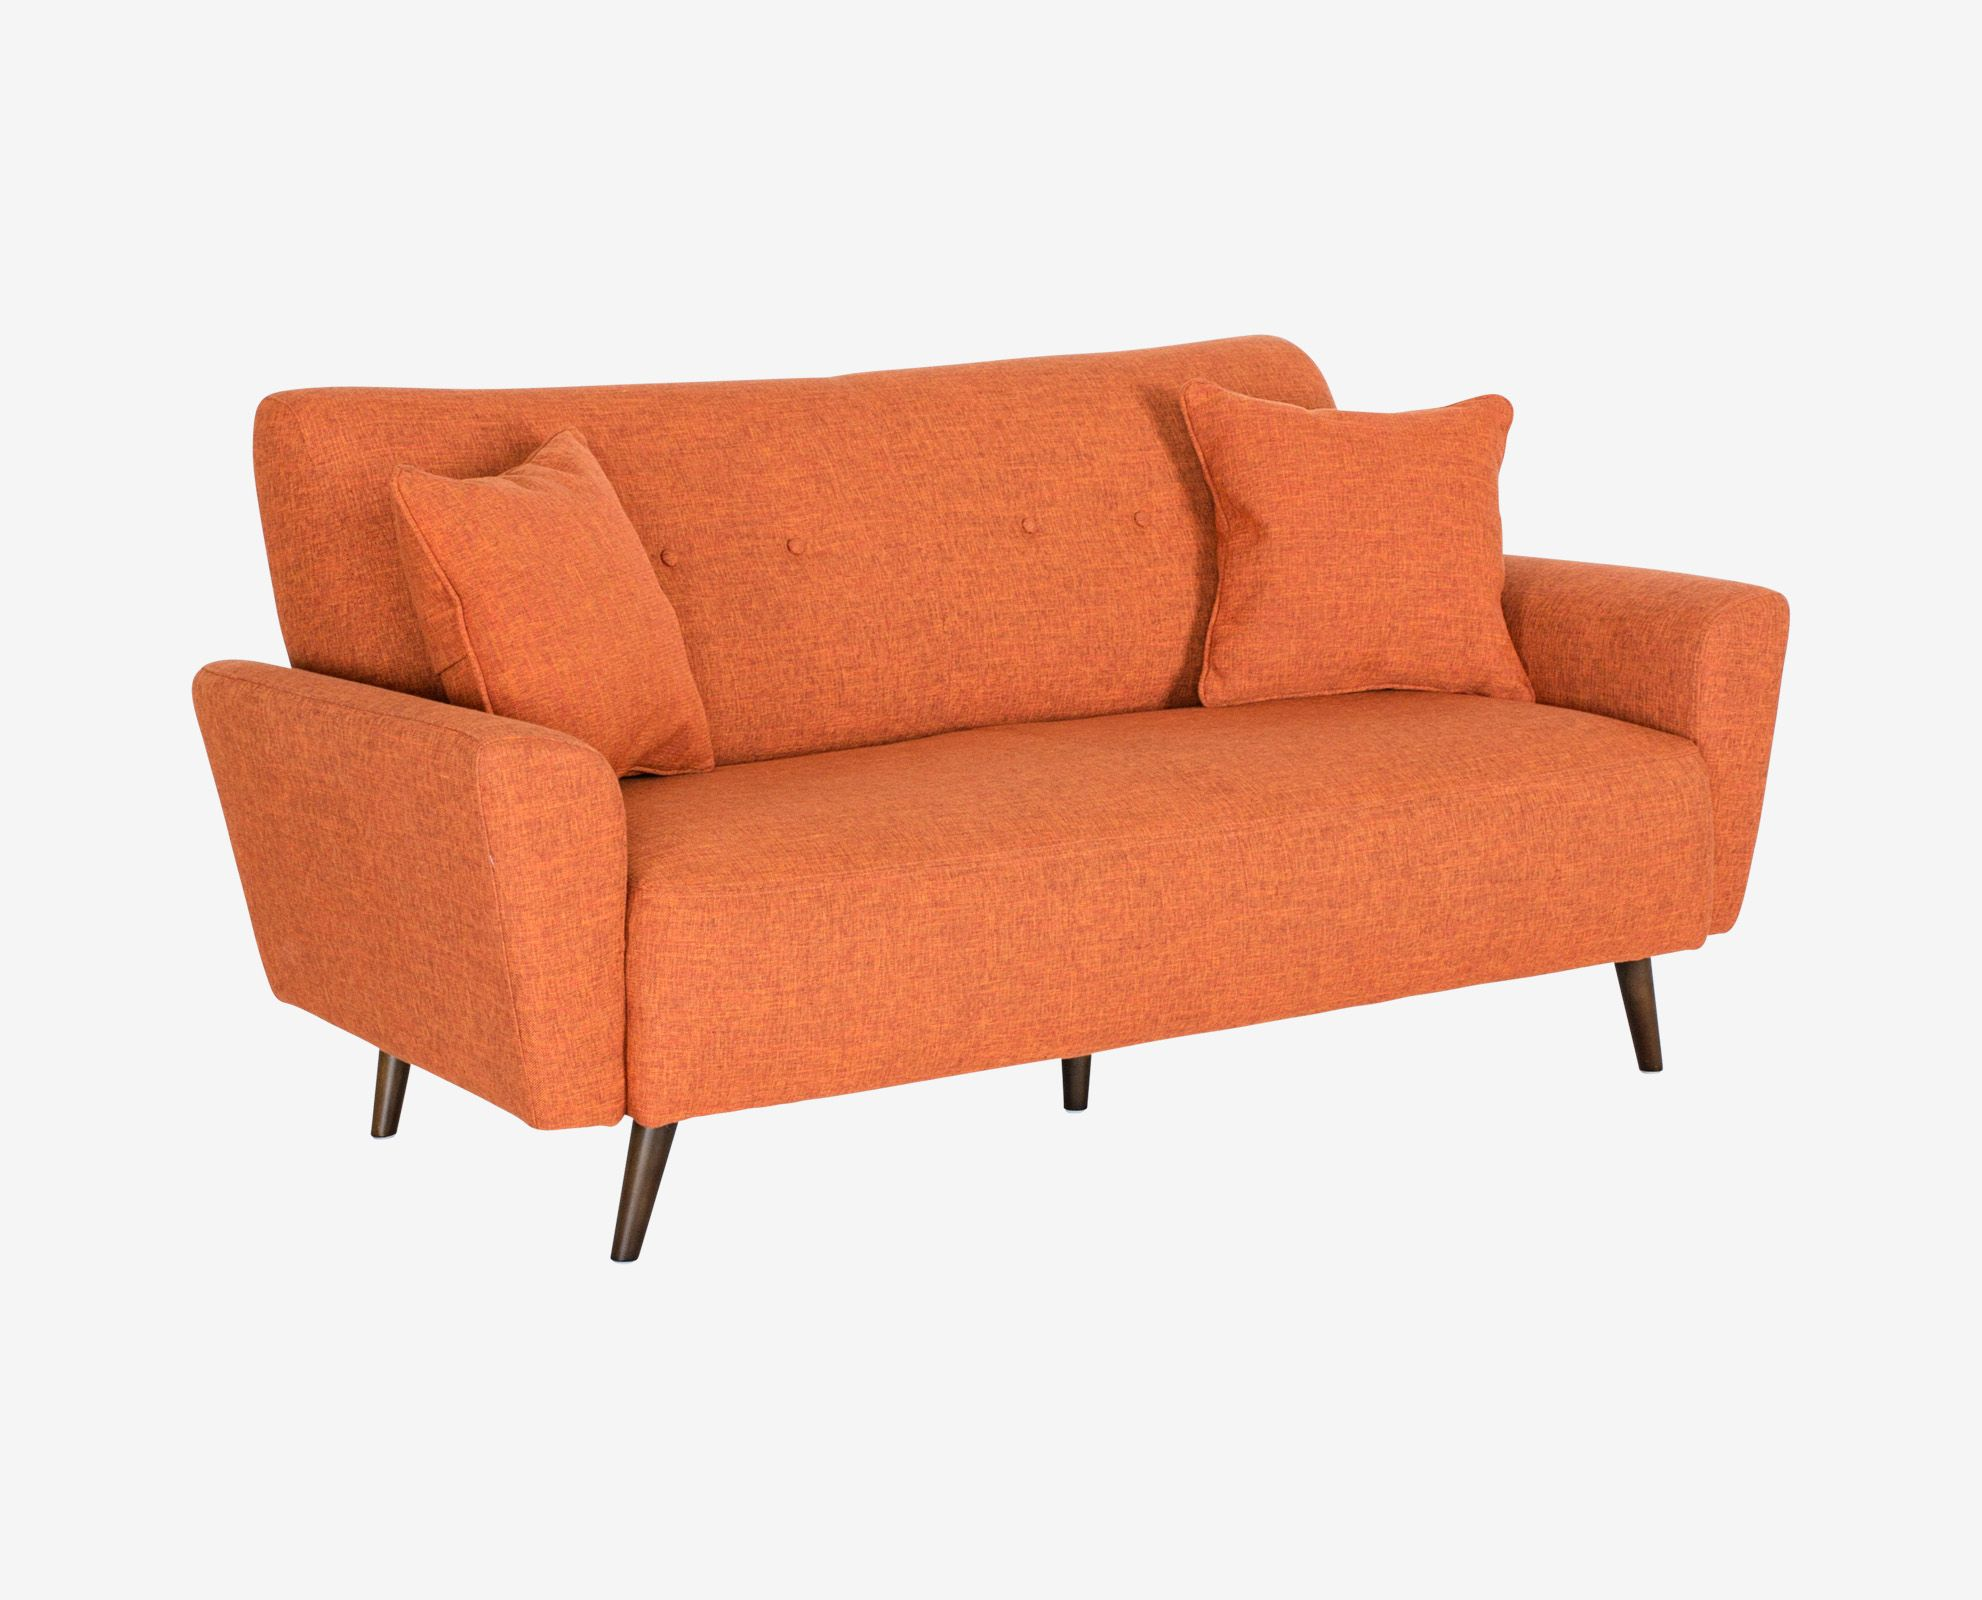 Setosa Sofa Sofas Dania Unique Living Room Furniture Furniture Modern Furniture Living Room #small #scale #living #room #furniture